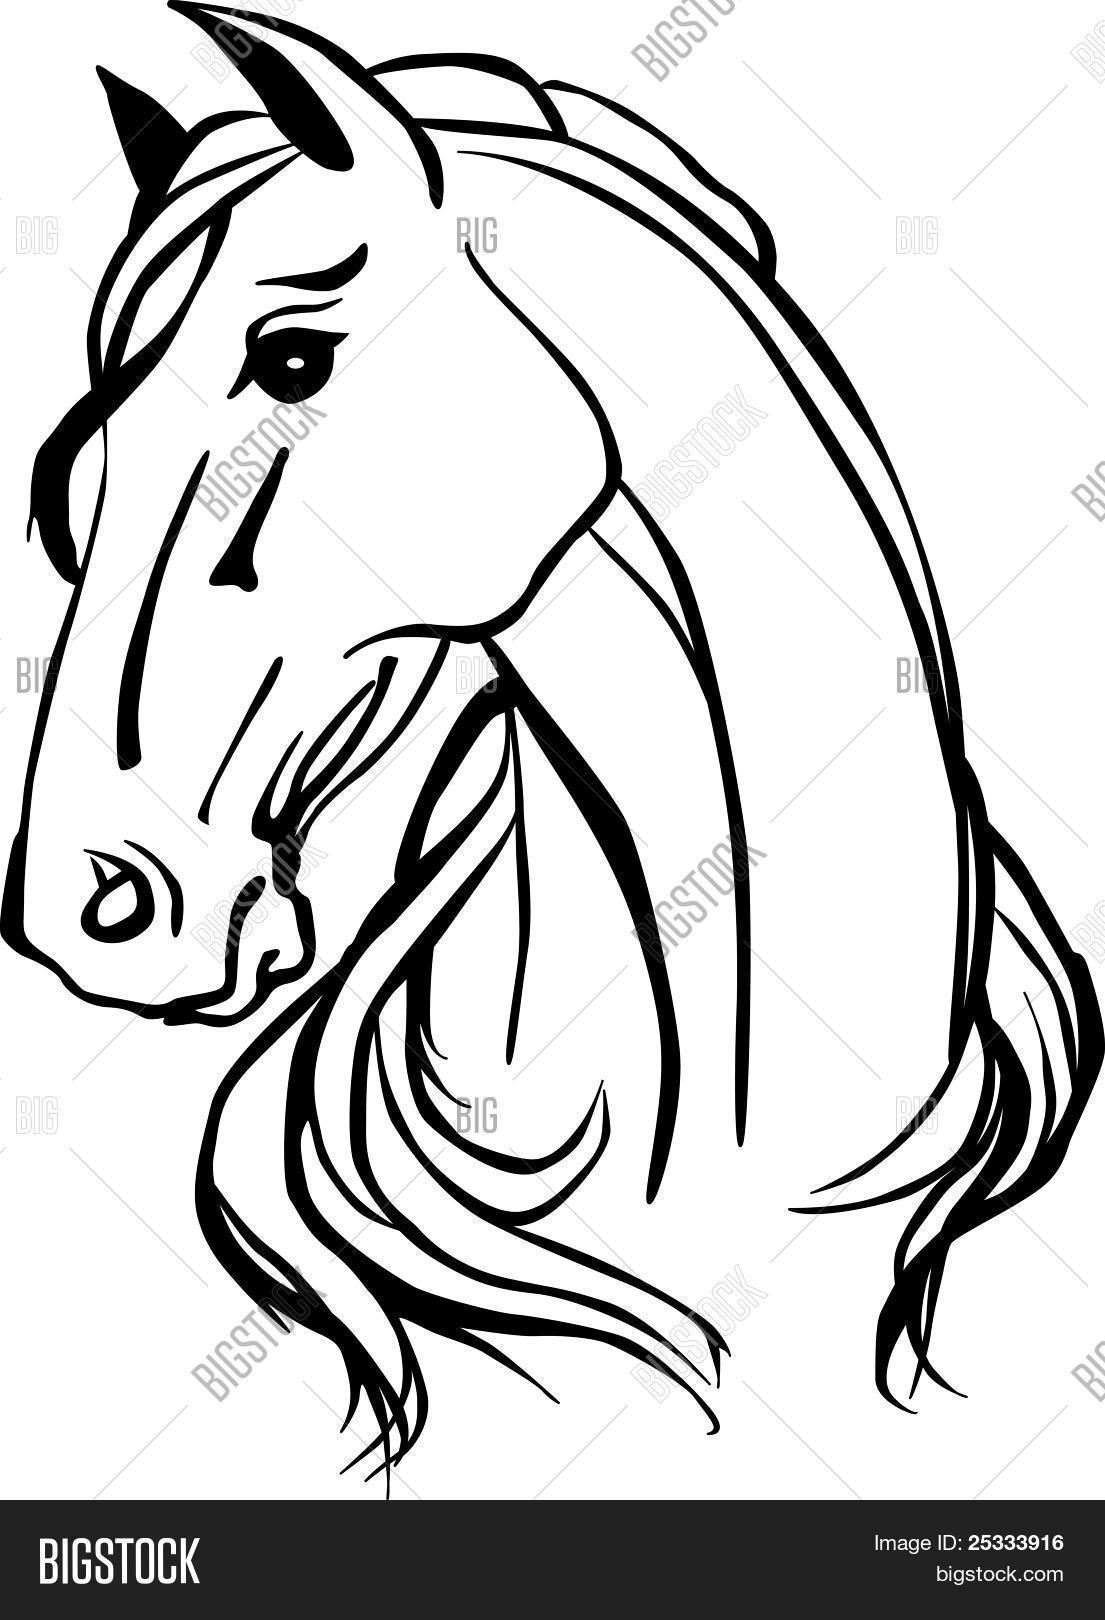 1105x1620 Horse Head Images, Illustrations, Vectors